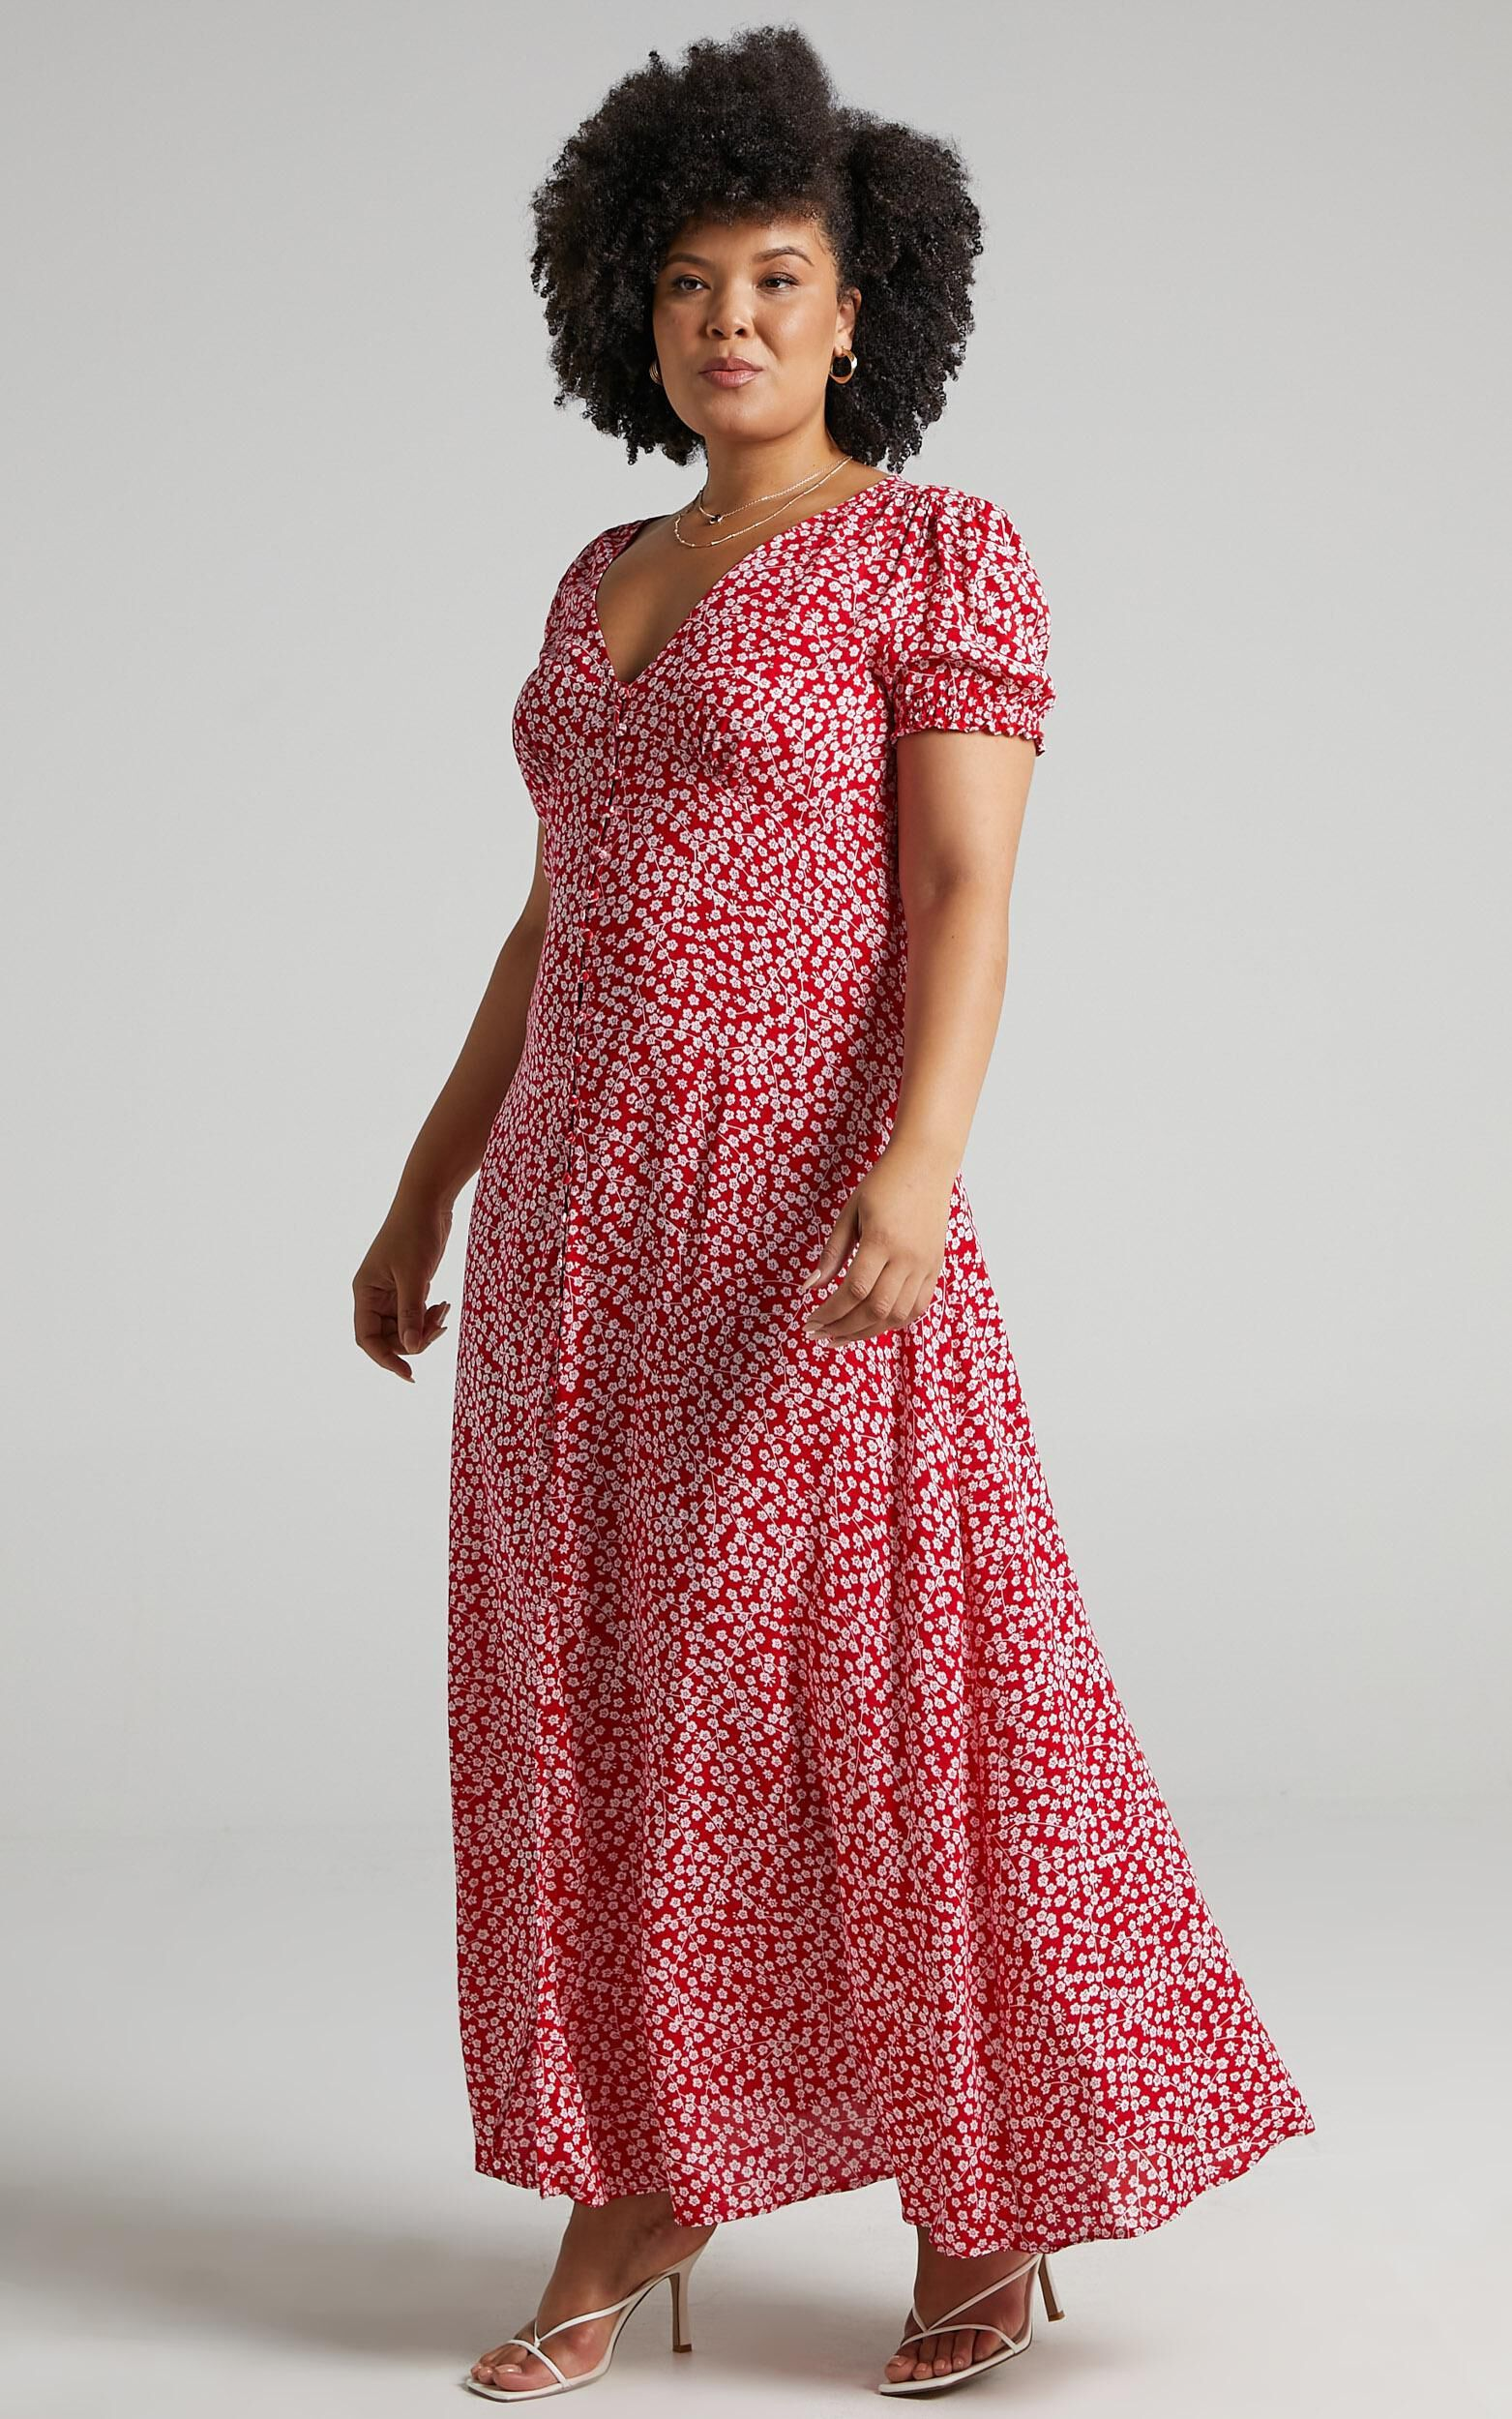 Flaming Hot Button Up V Neck Maxi Dress in Red Floral - 20, RED3, super-hi-res image number null